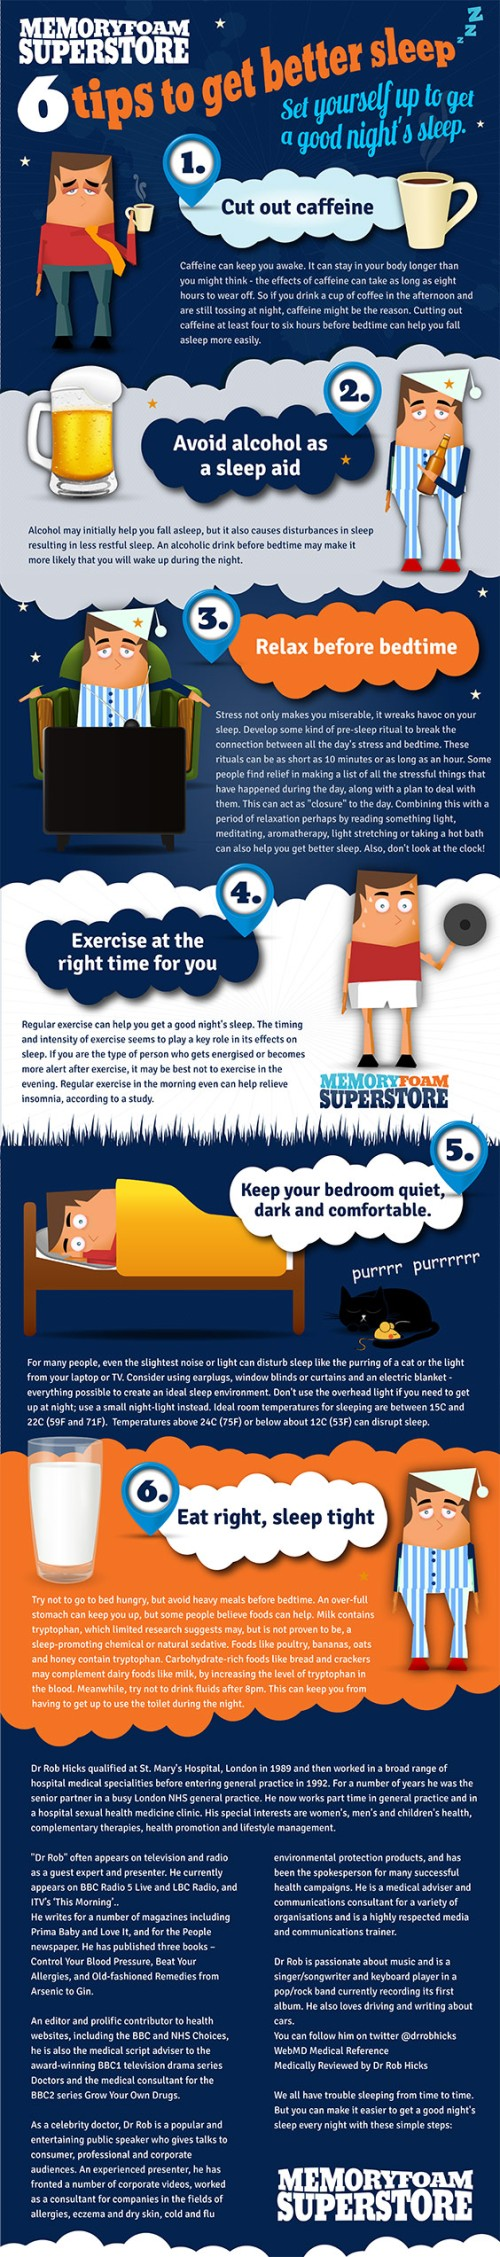 6 Top Tips For A Better Nights Sleep